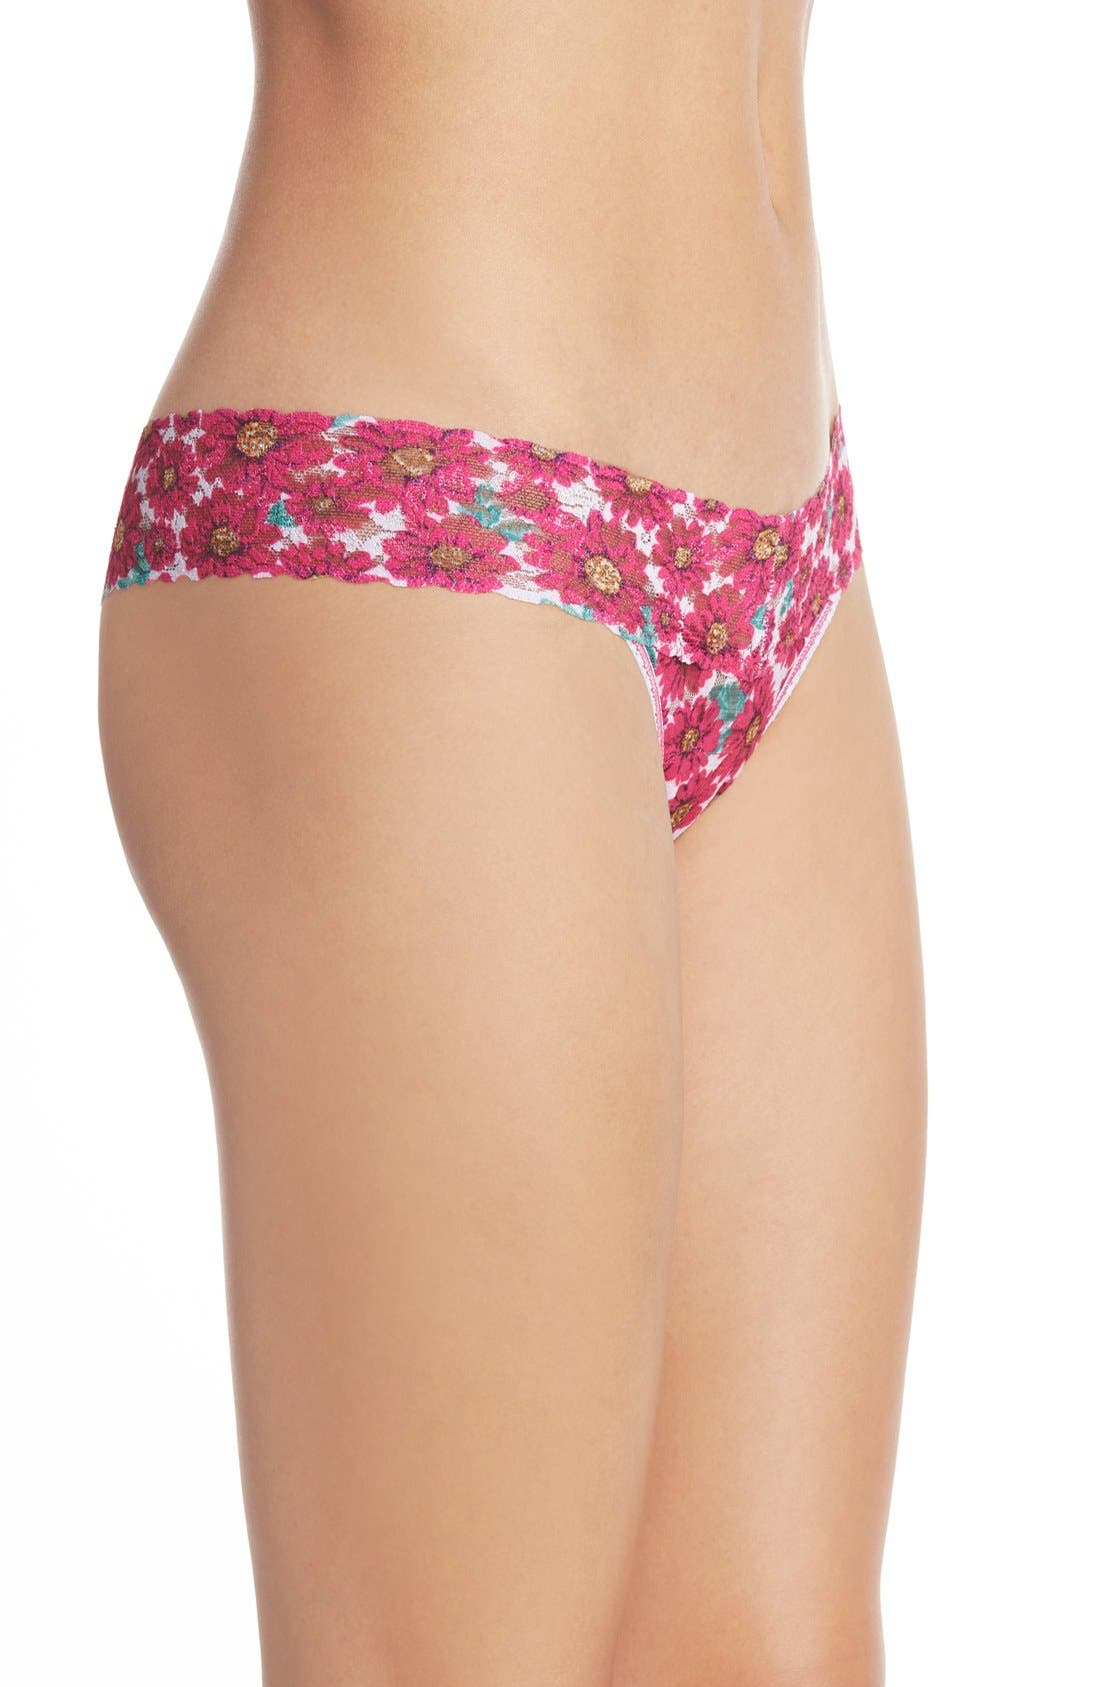 Alternate Image 3  - Hanky Panky 'Alluring Daisies' Low Rise Thong